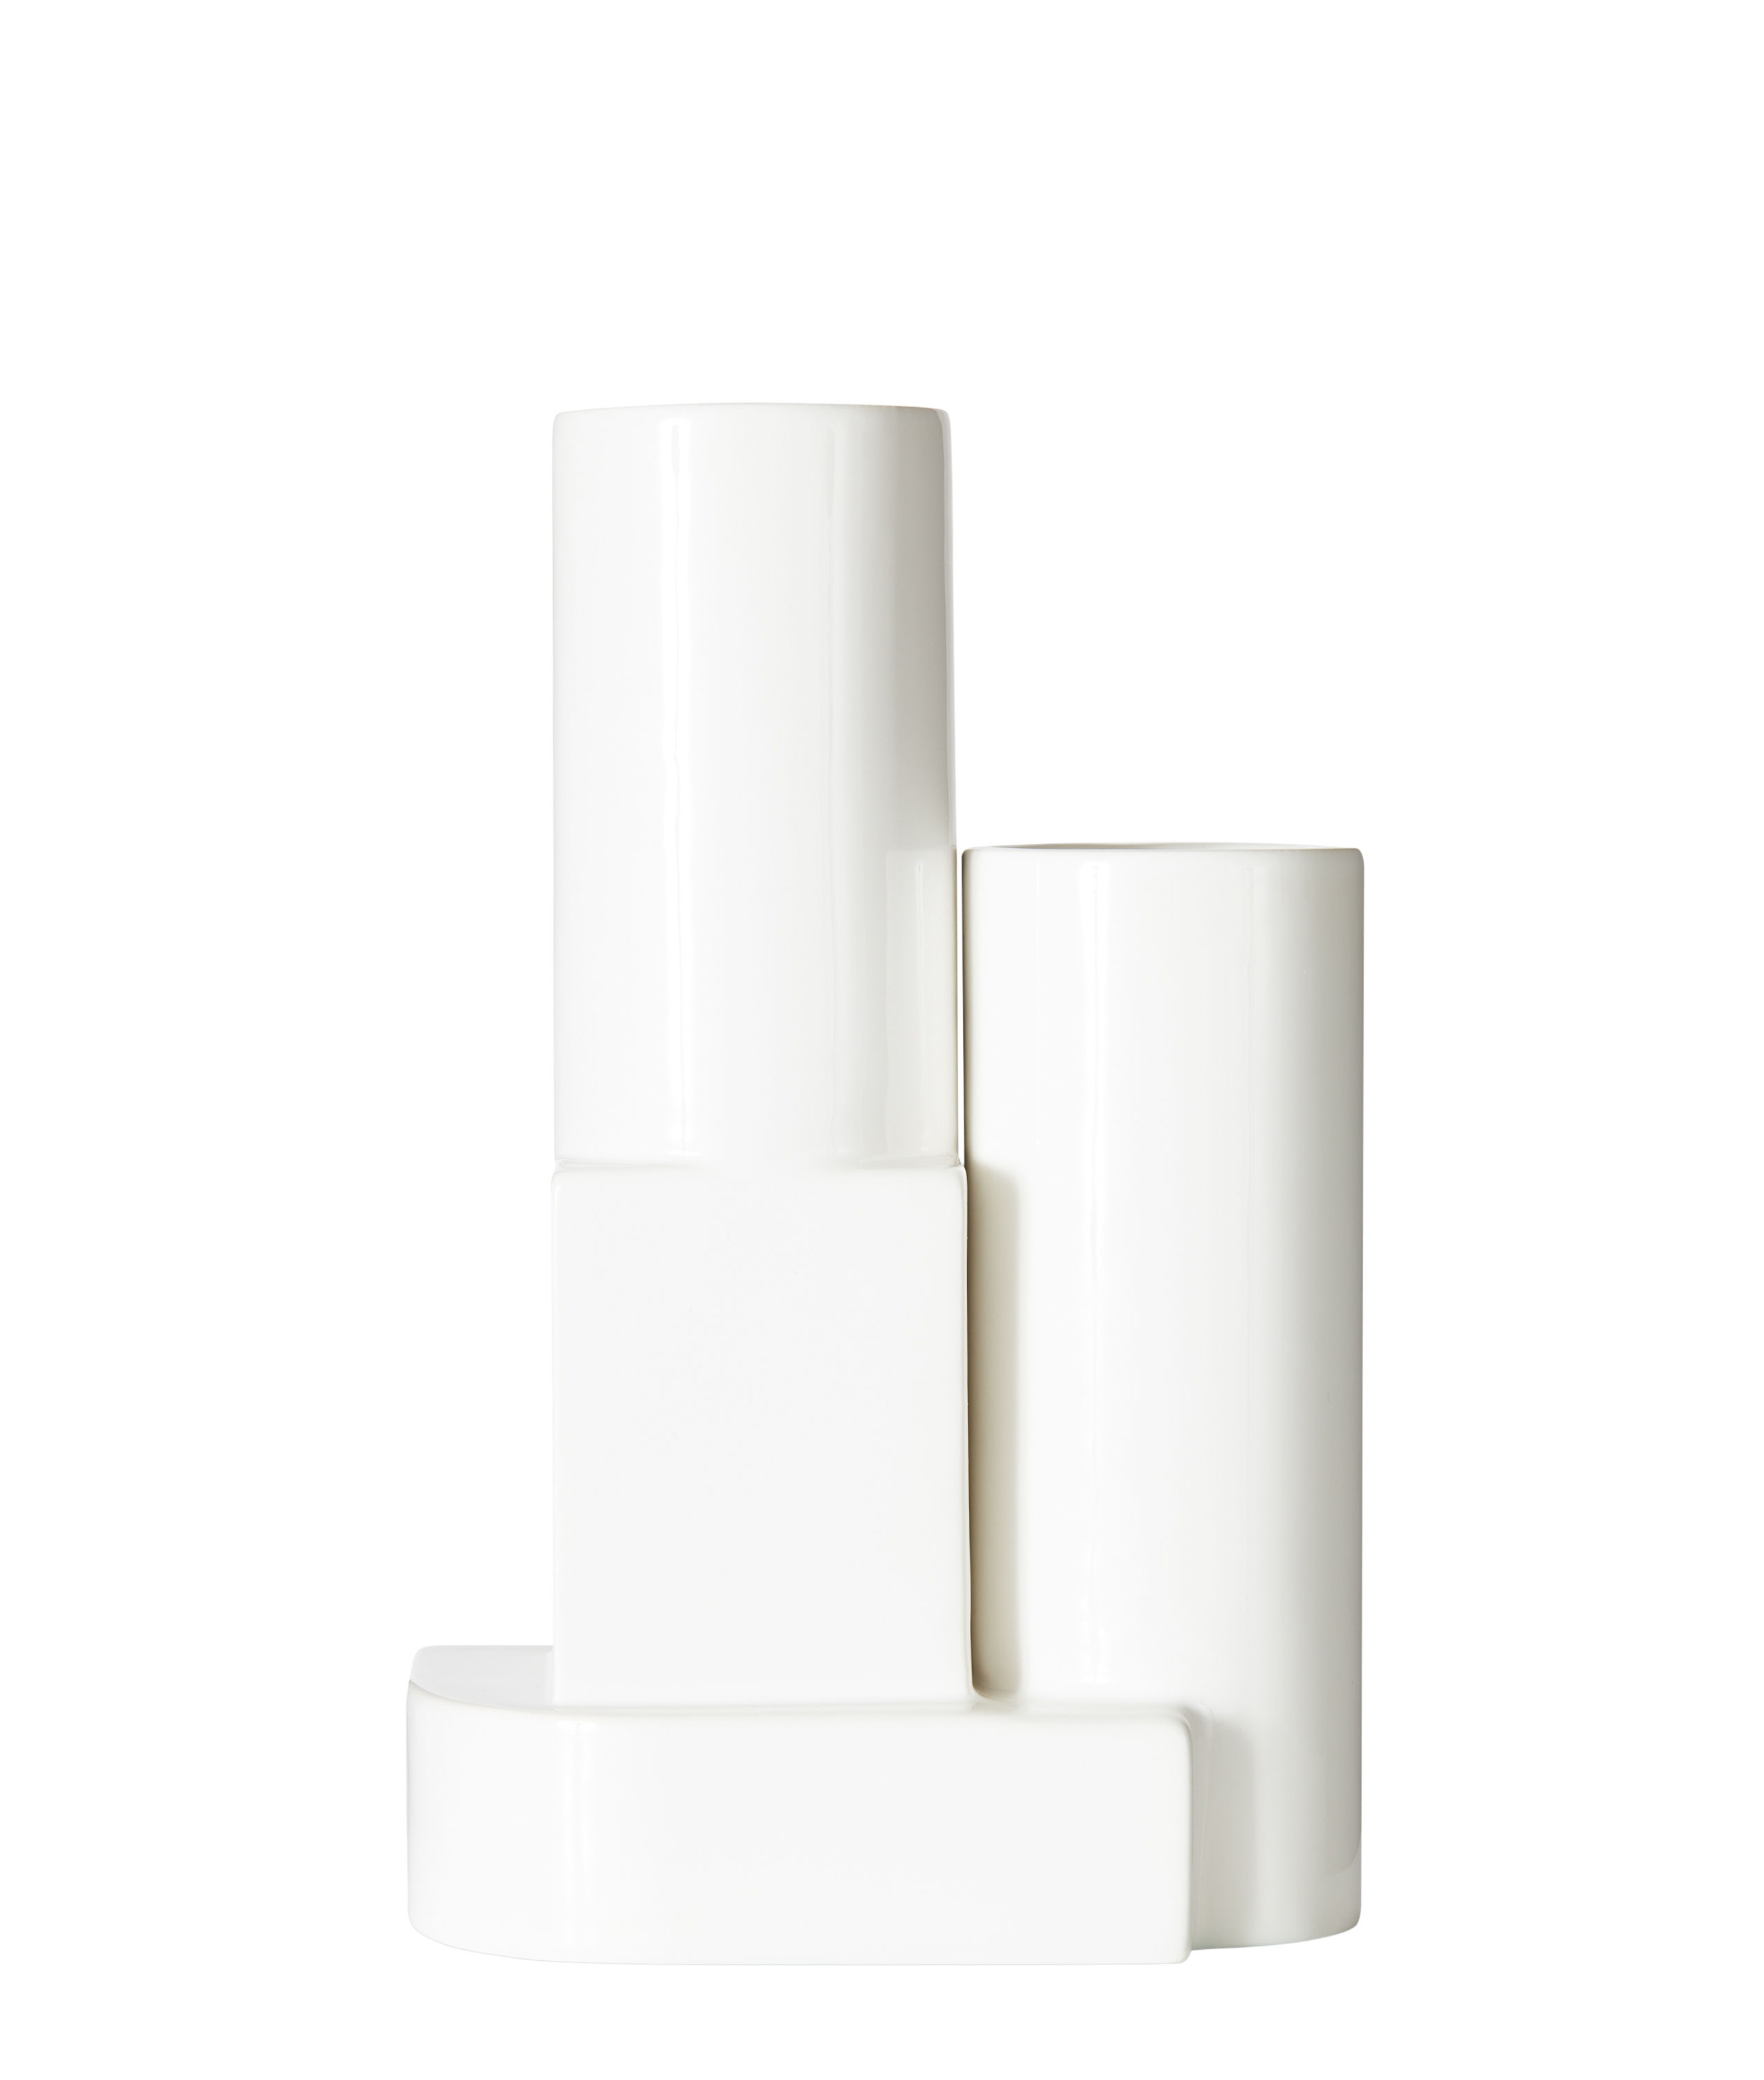 Decoration - Vases - Block Small Vase - / H 26 cm by Tom Dixon - White - Enamelled earthenware